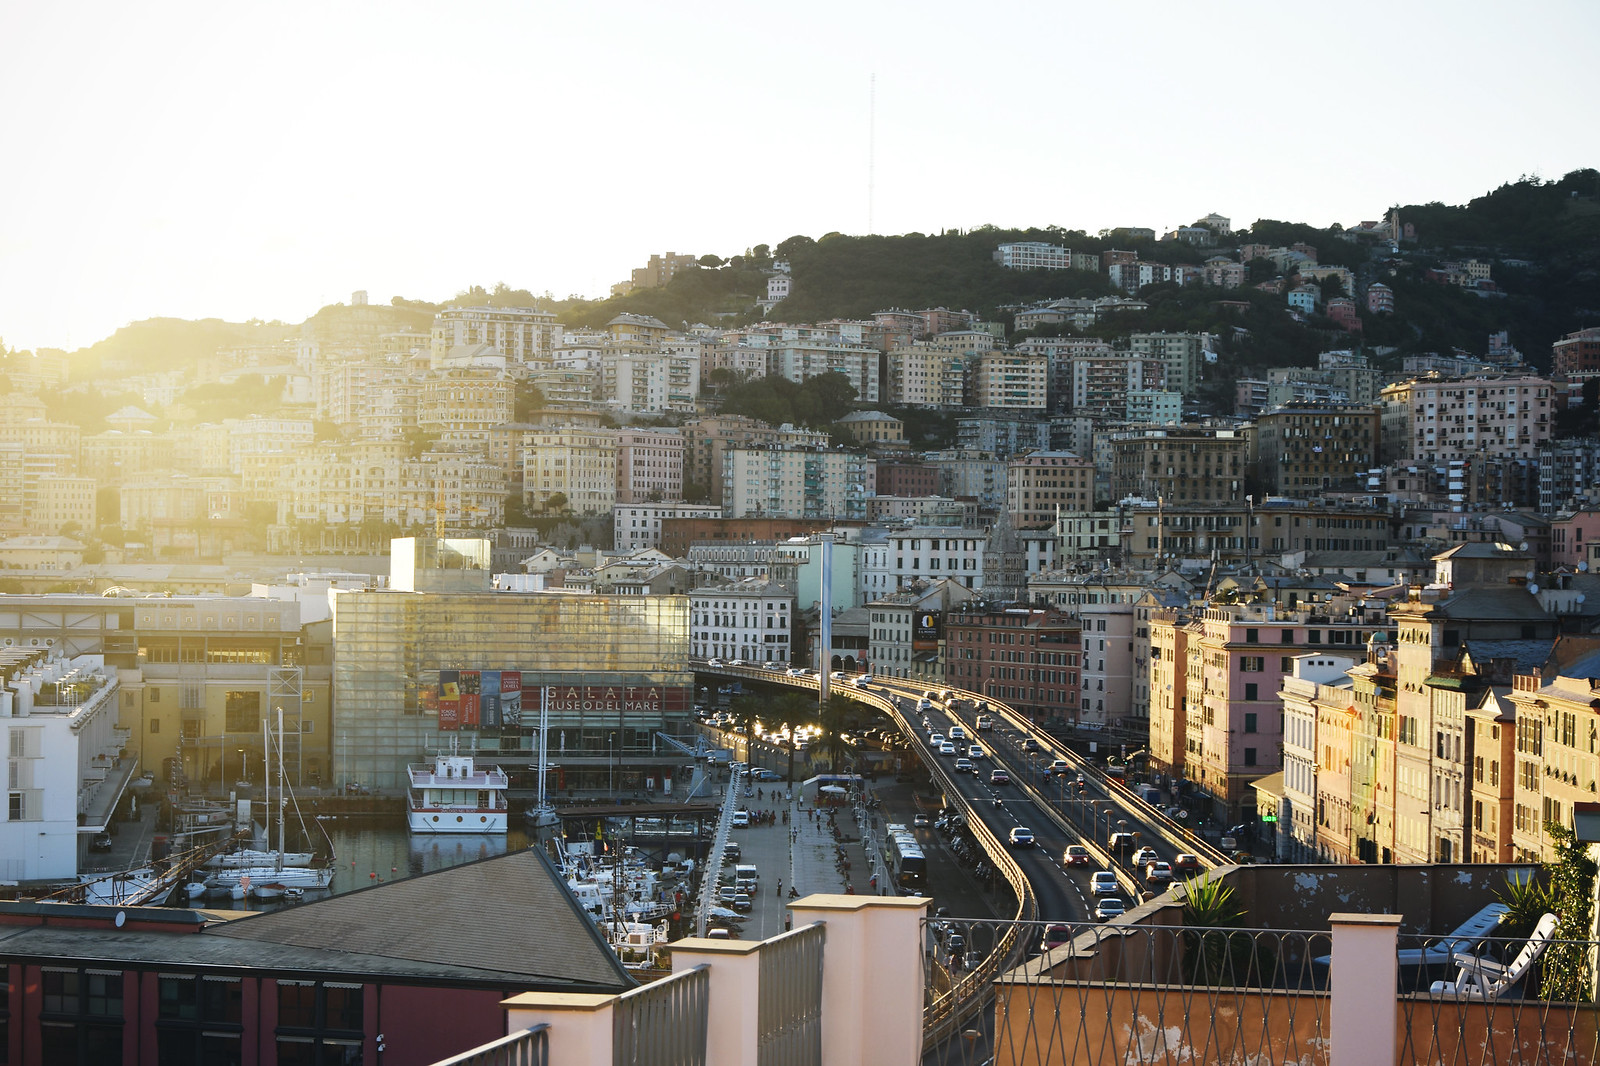 Where to stay in Genoa